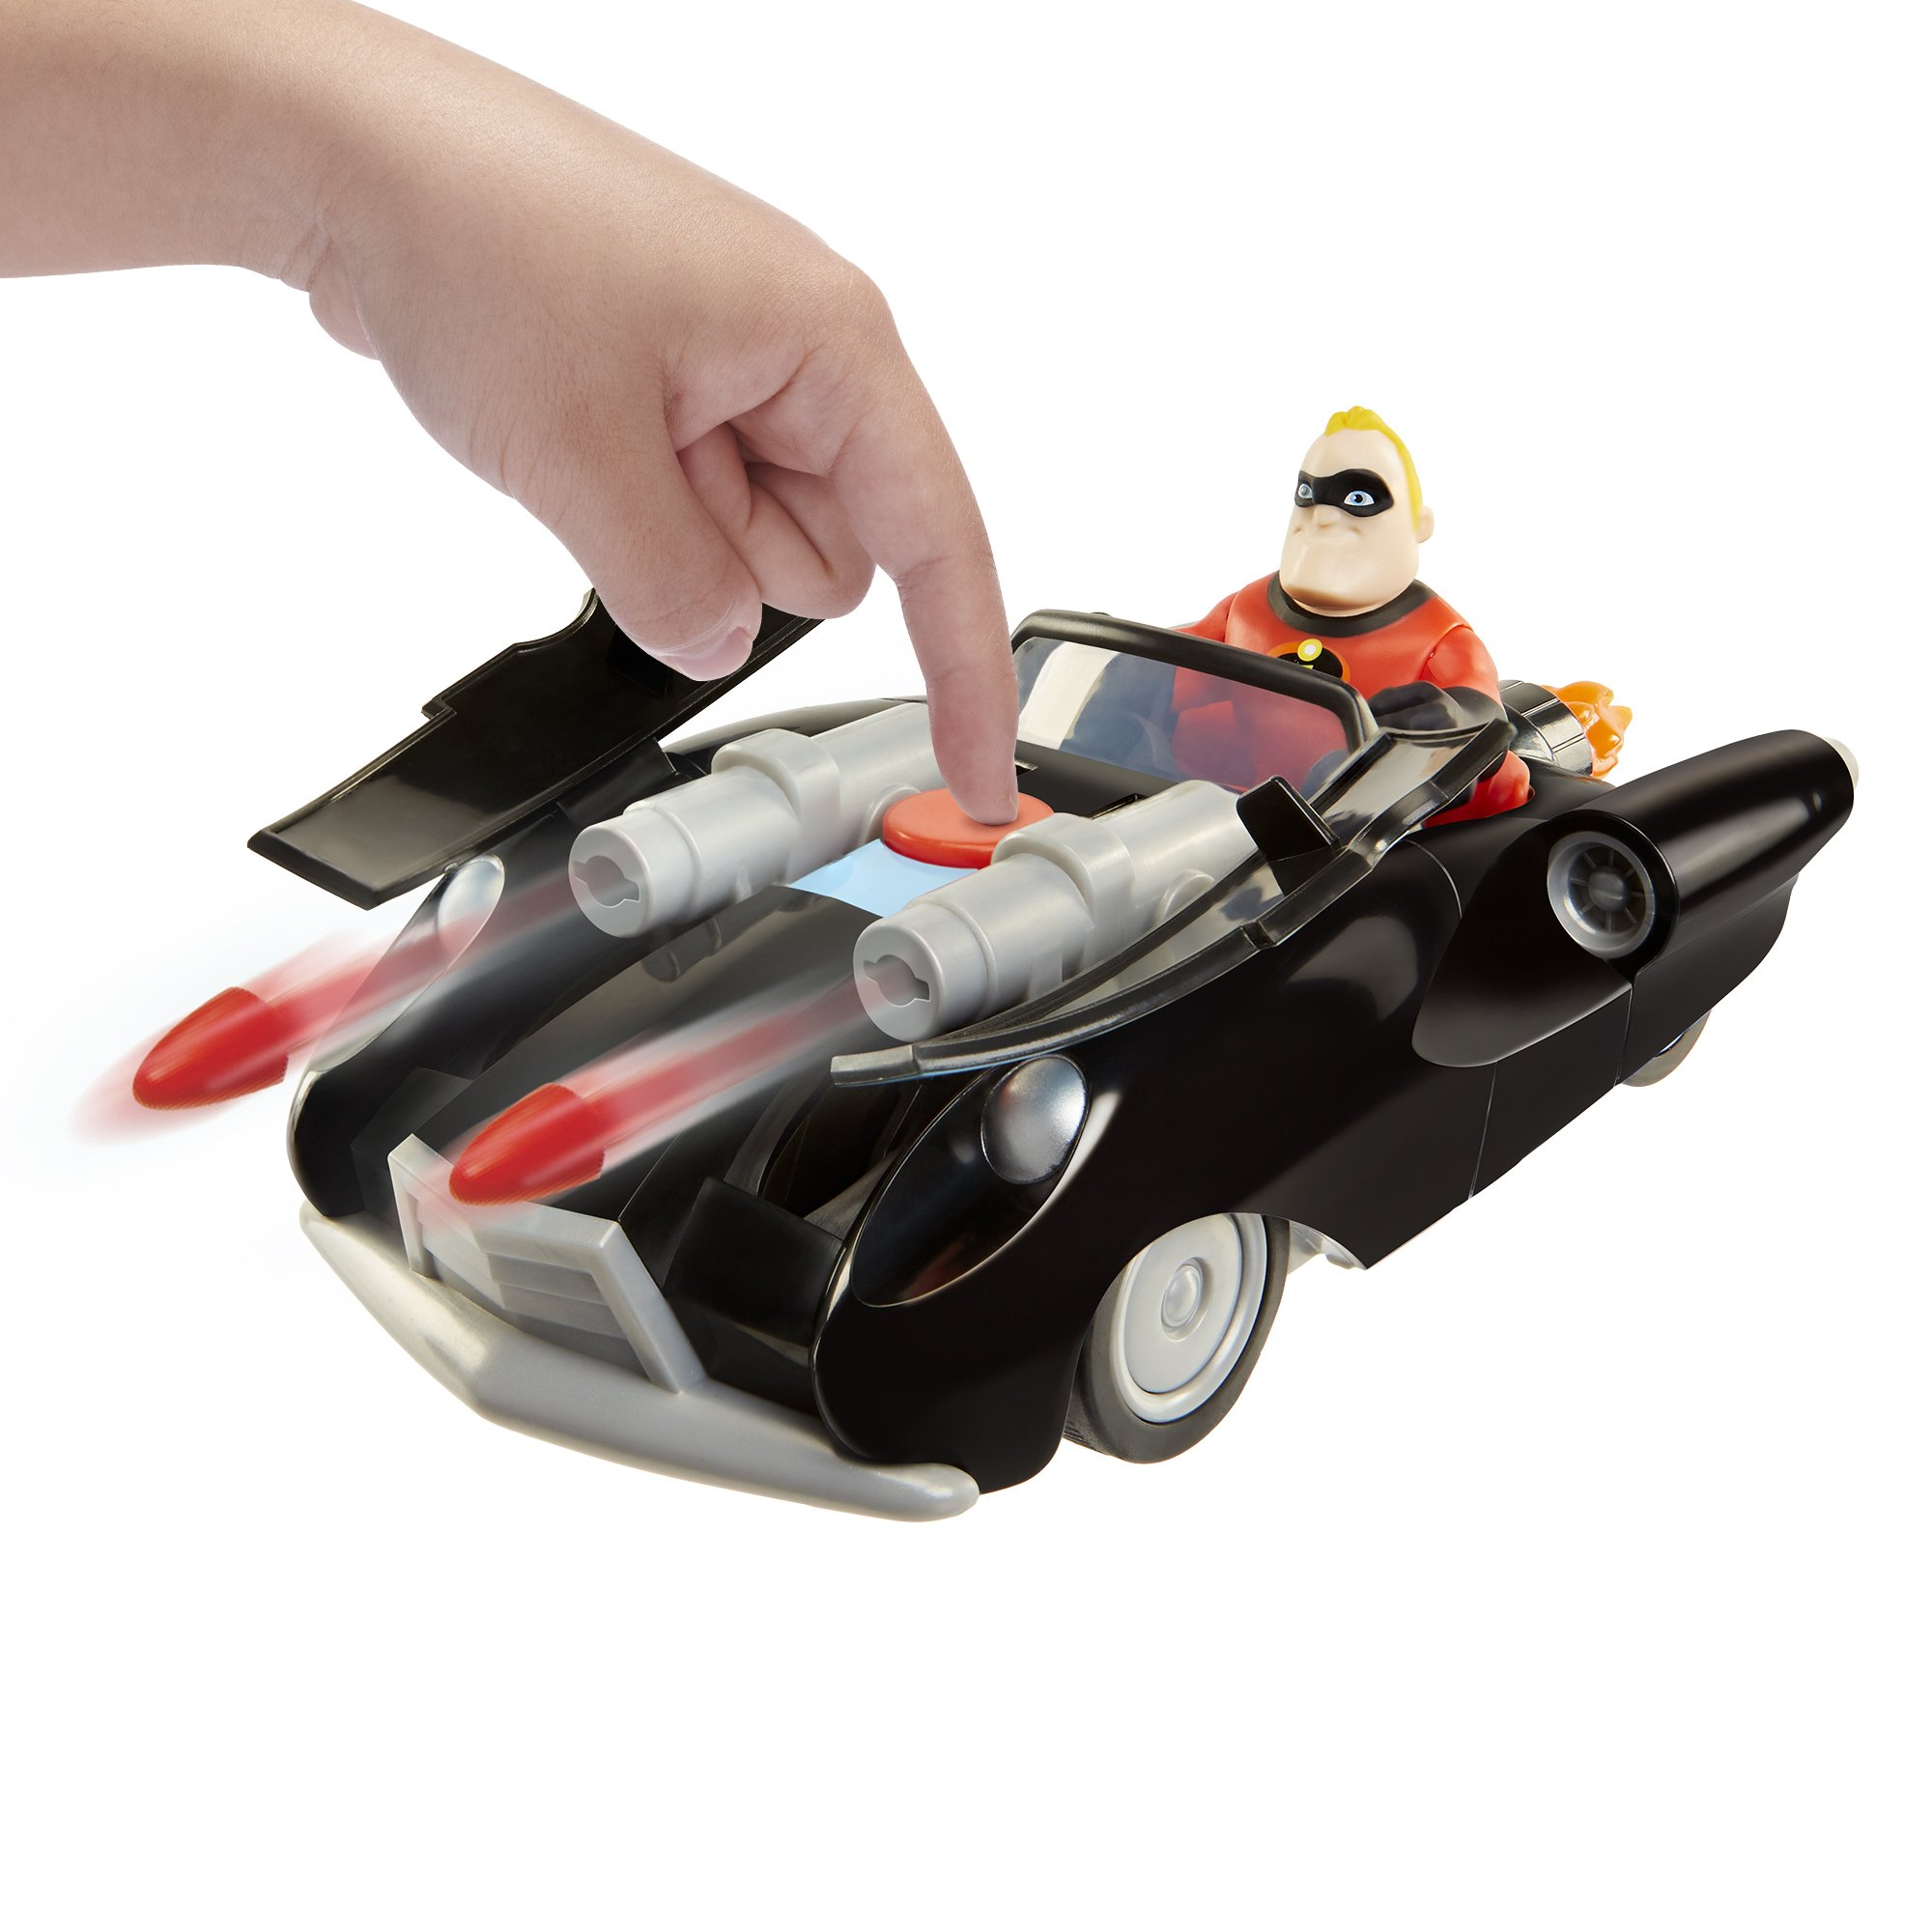 The Incredibles 2 Incredibile Car & Mr. Incredible Action Figure 2-Piece Set, Black Car and Red Mr. Incredible Figure, Medium by The Incredibles 2 (Image #3)